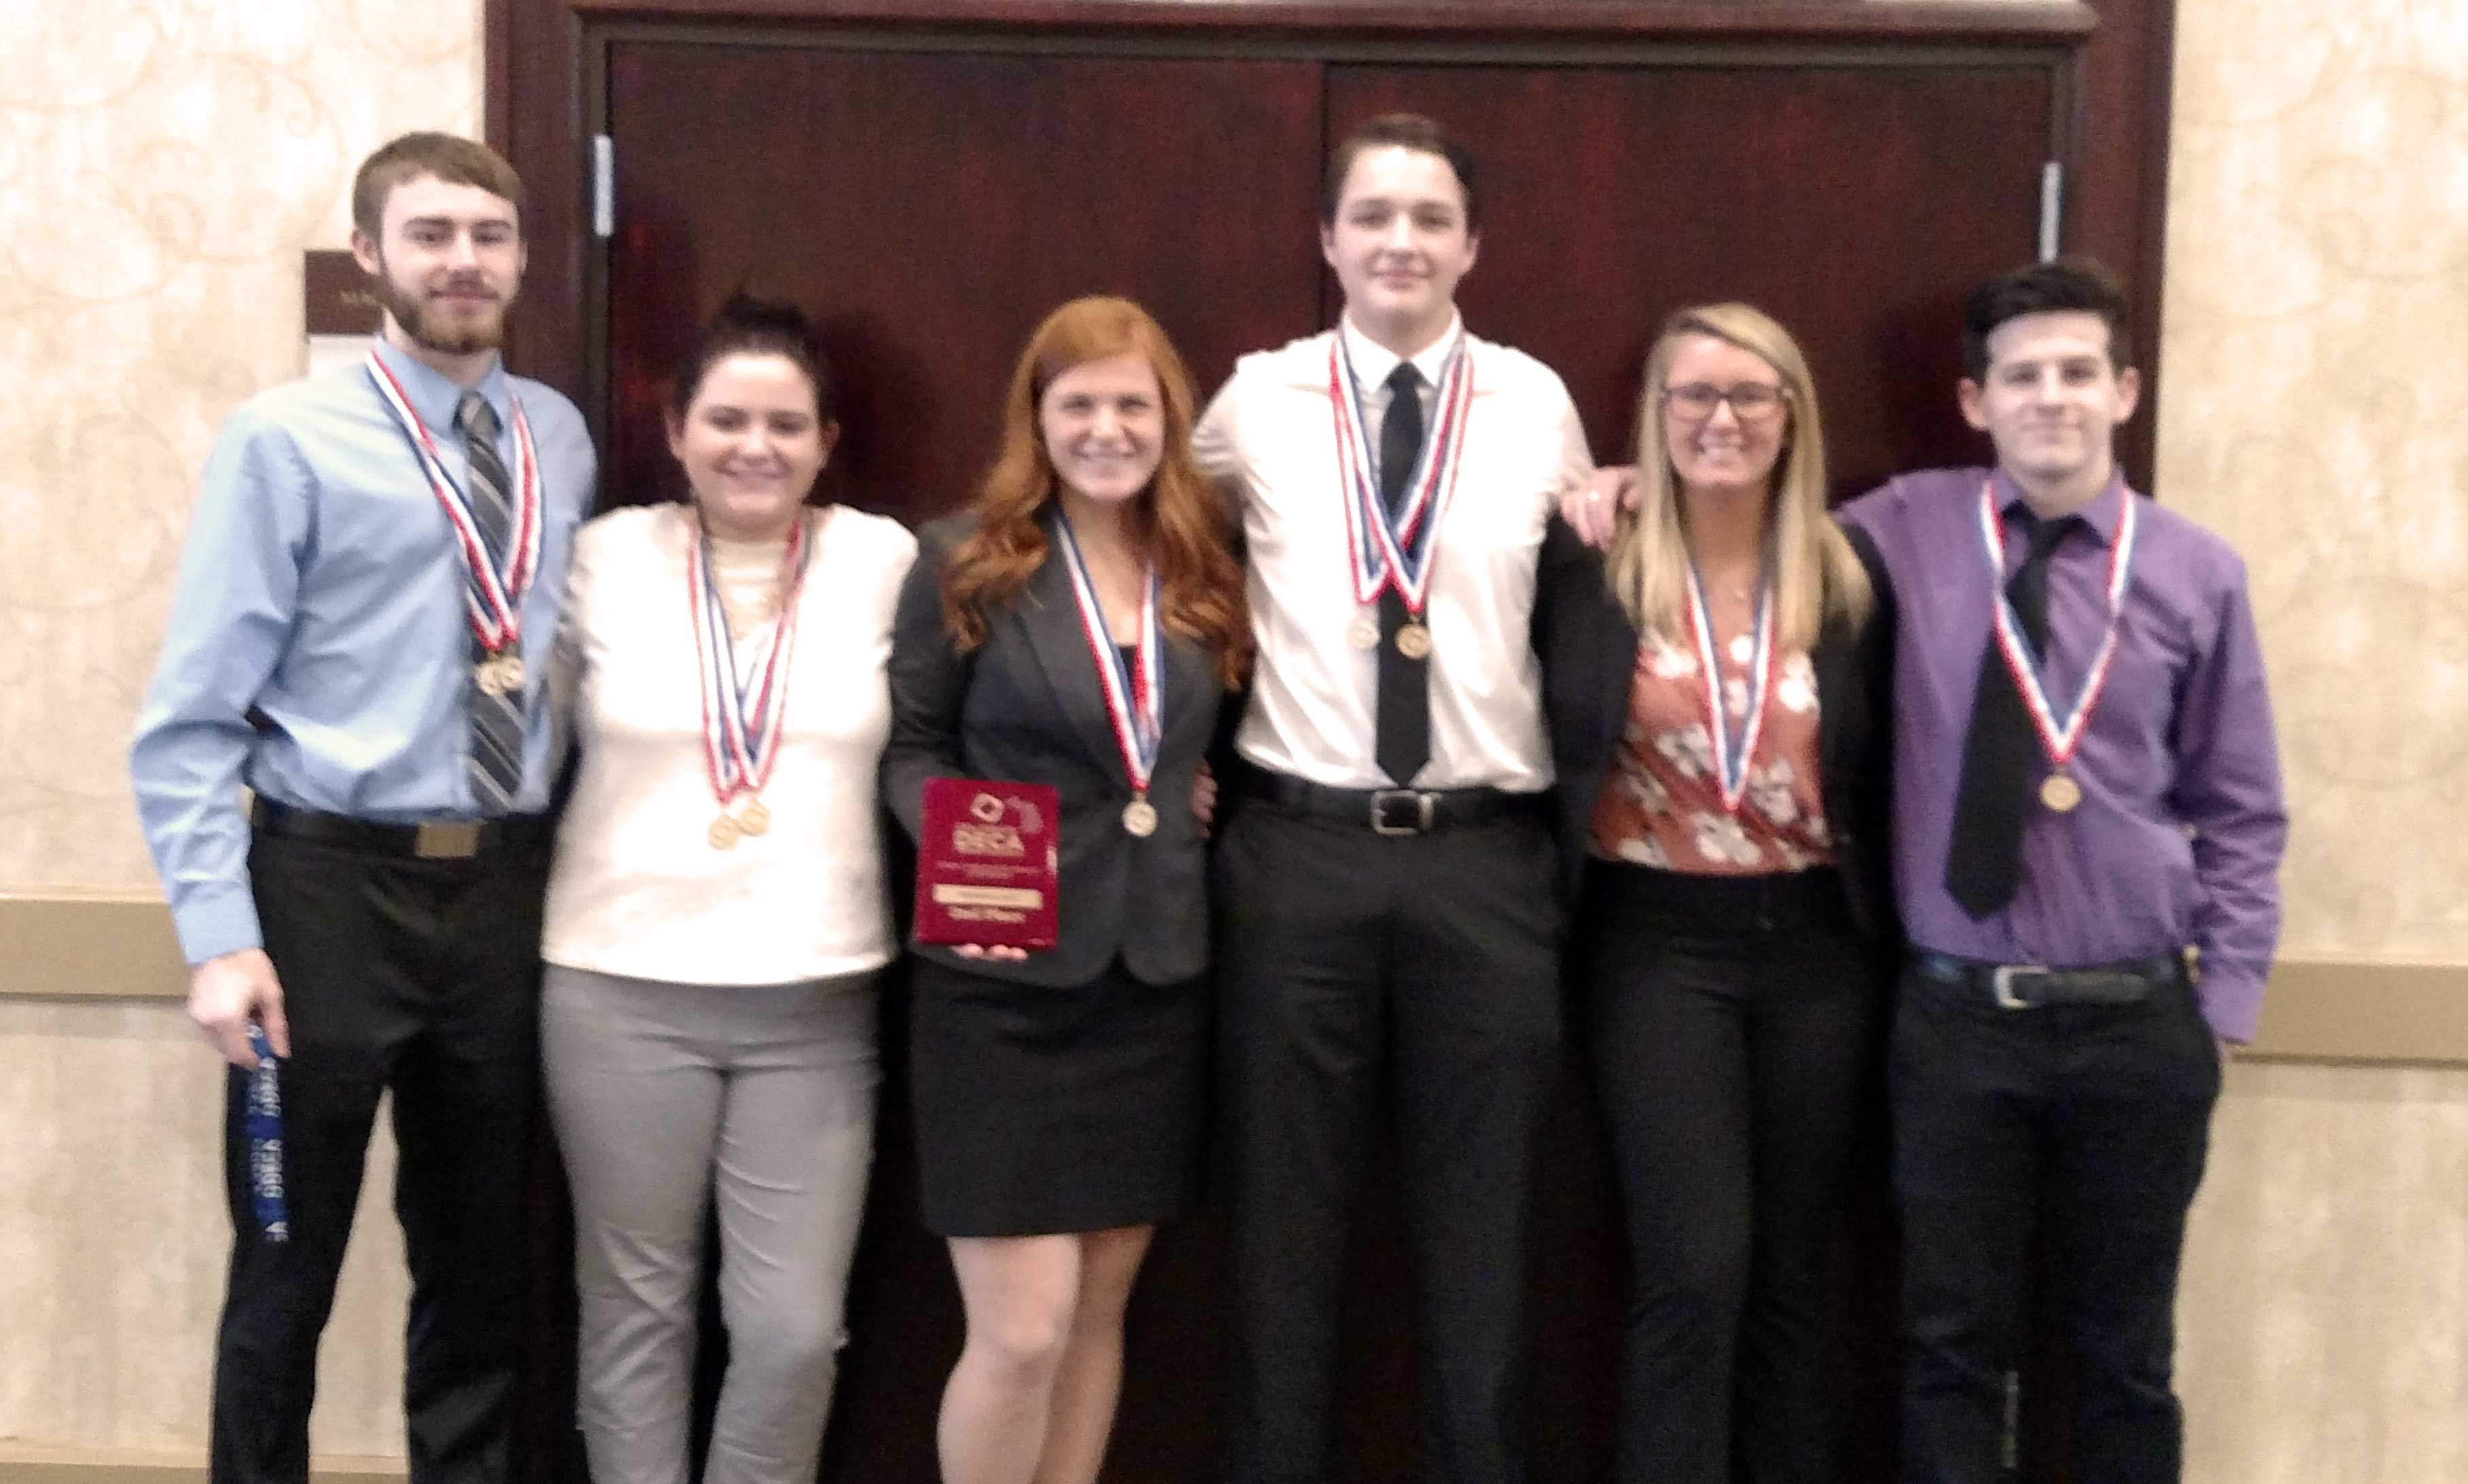 All six of our students who competed at the statewide contest for DECA in Grand Rapids last weekend qualified for the national competition in Washington, D.C. this April.